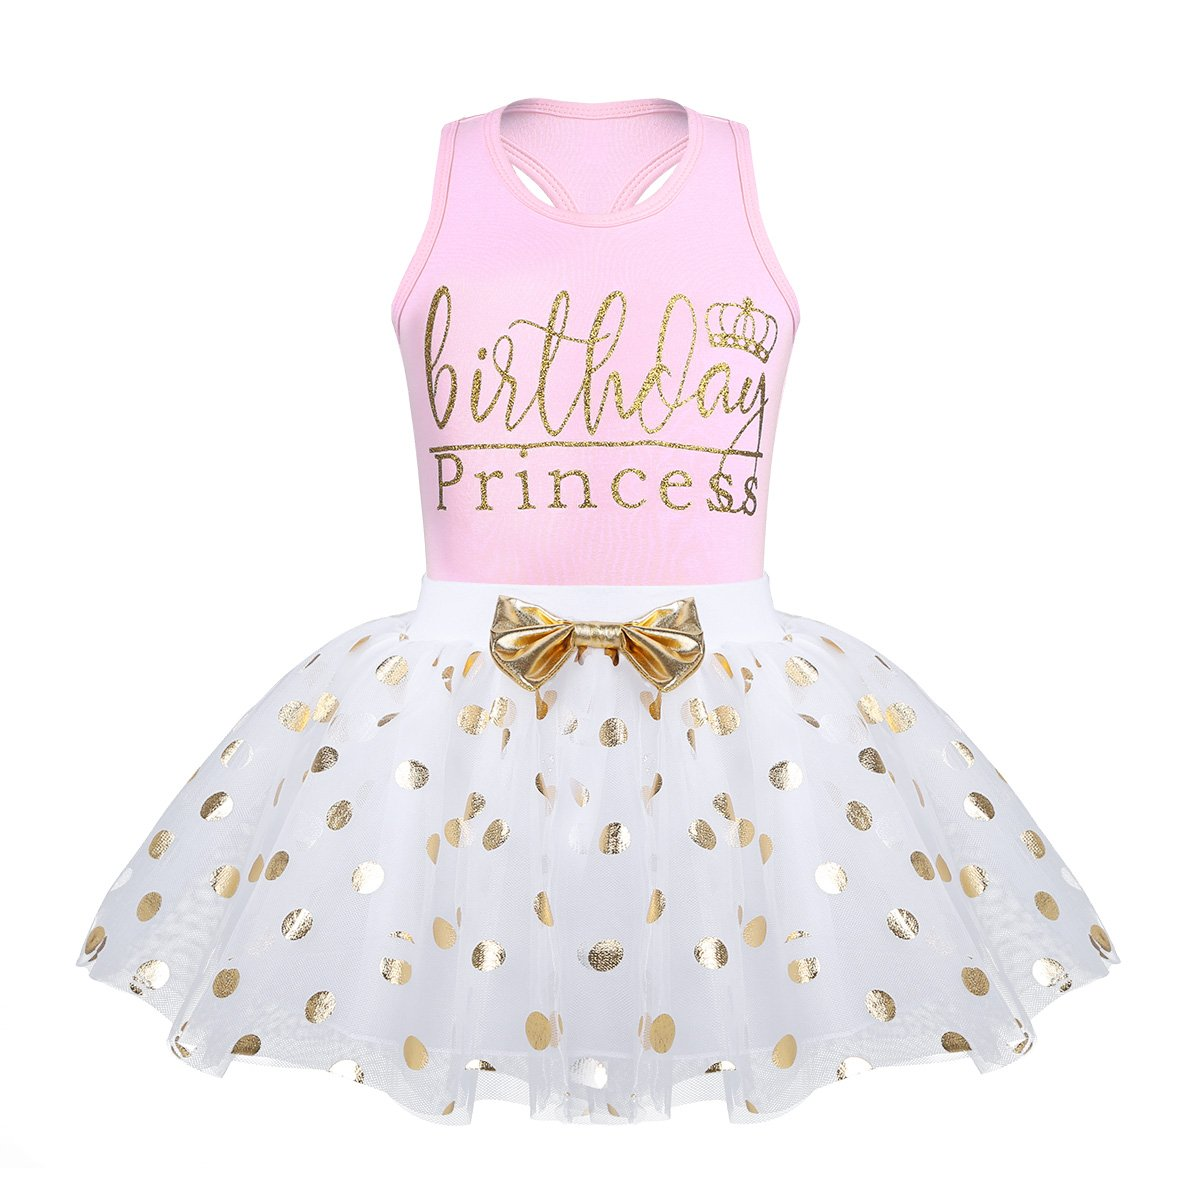 dPois Toddlers Baby Girls Frist 1st Birthday Cake Smash Outfit Top T-Shirt with Shinny Polka Dots Tutu Skirt Clothing Set